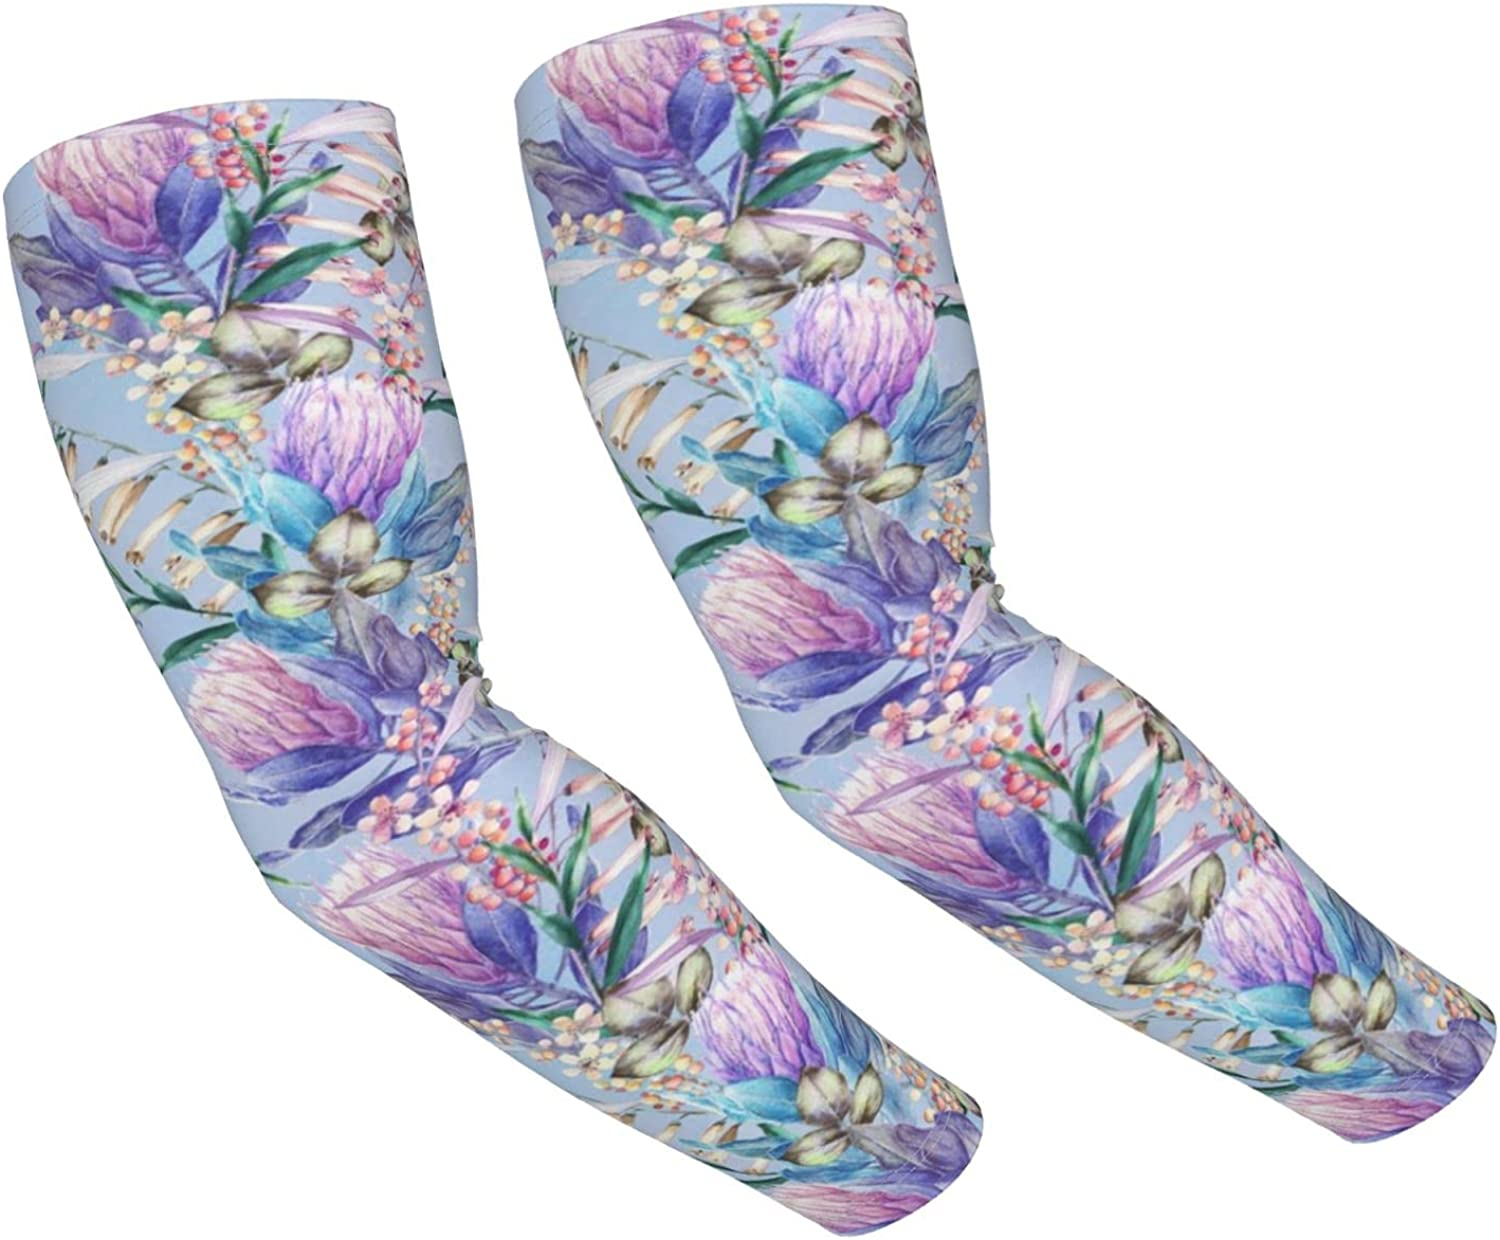 Purple flower Mesa Mall clusters in Our shop OFFers the best service watercolor Sun Prot Arm Unisex Sleeves